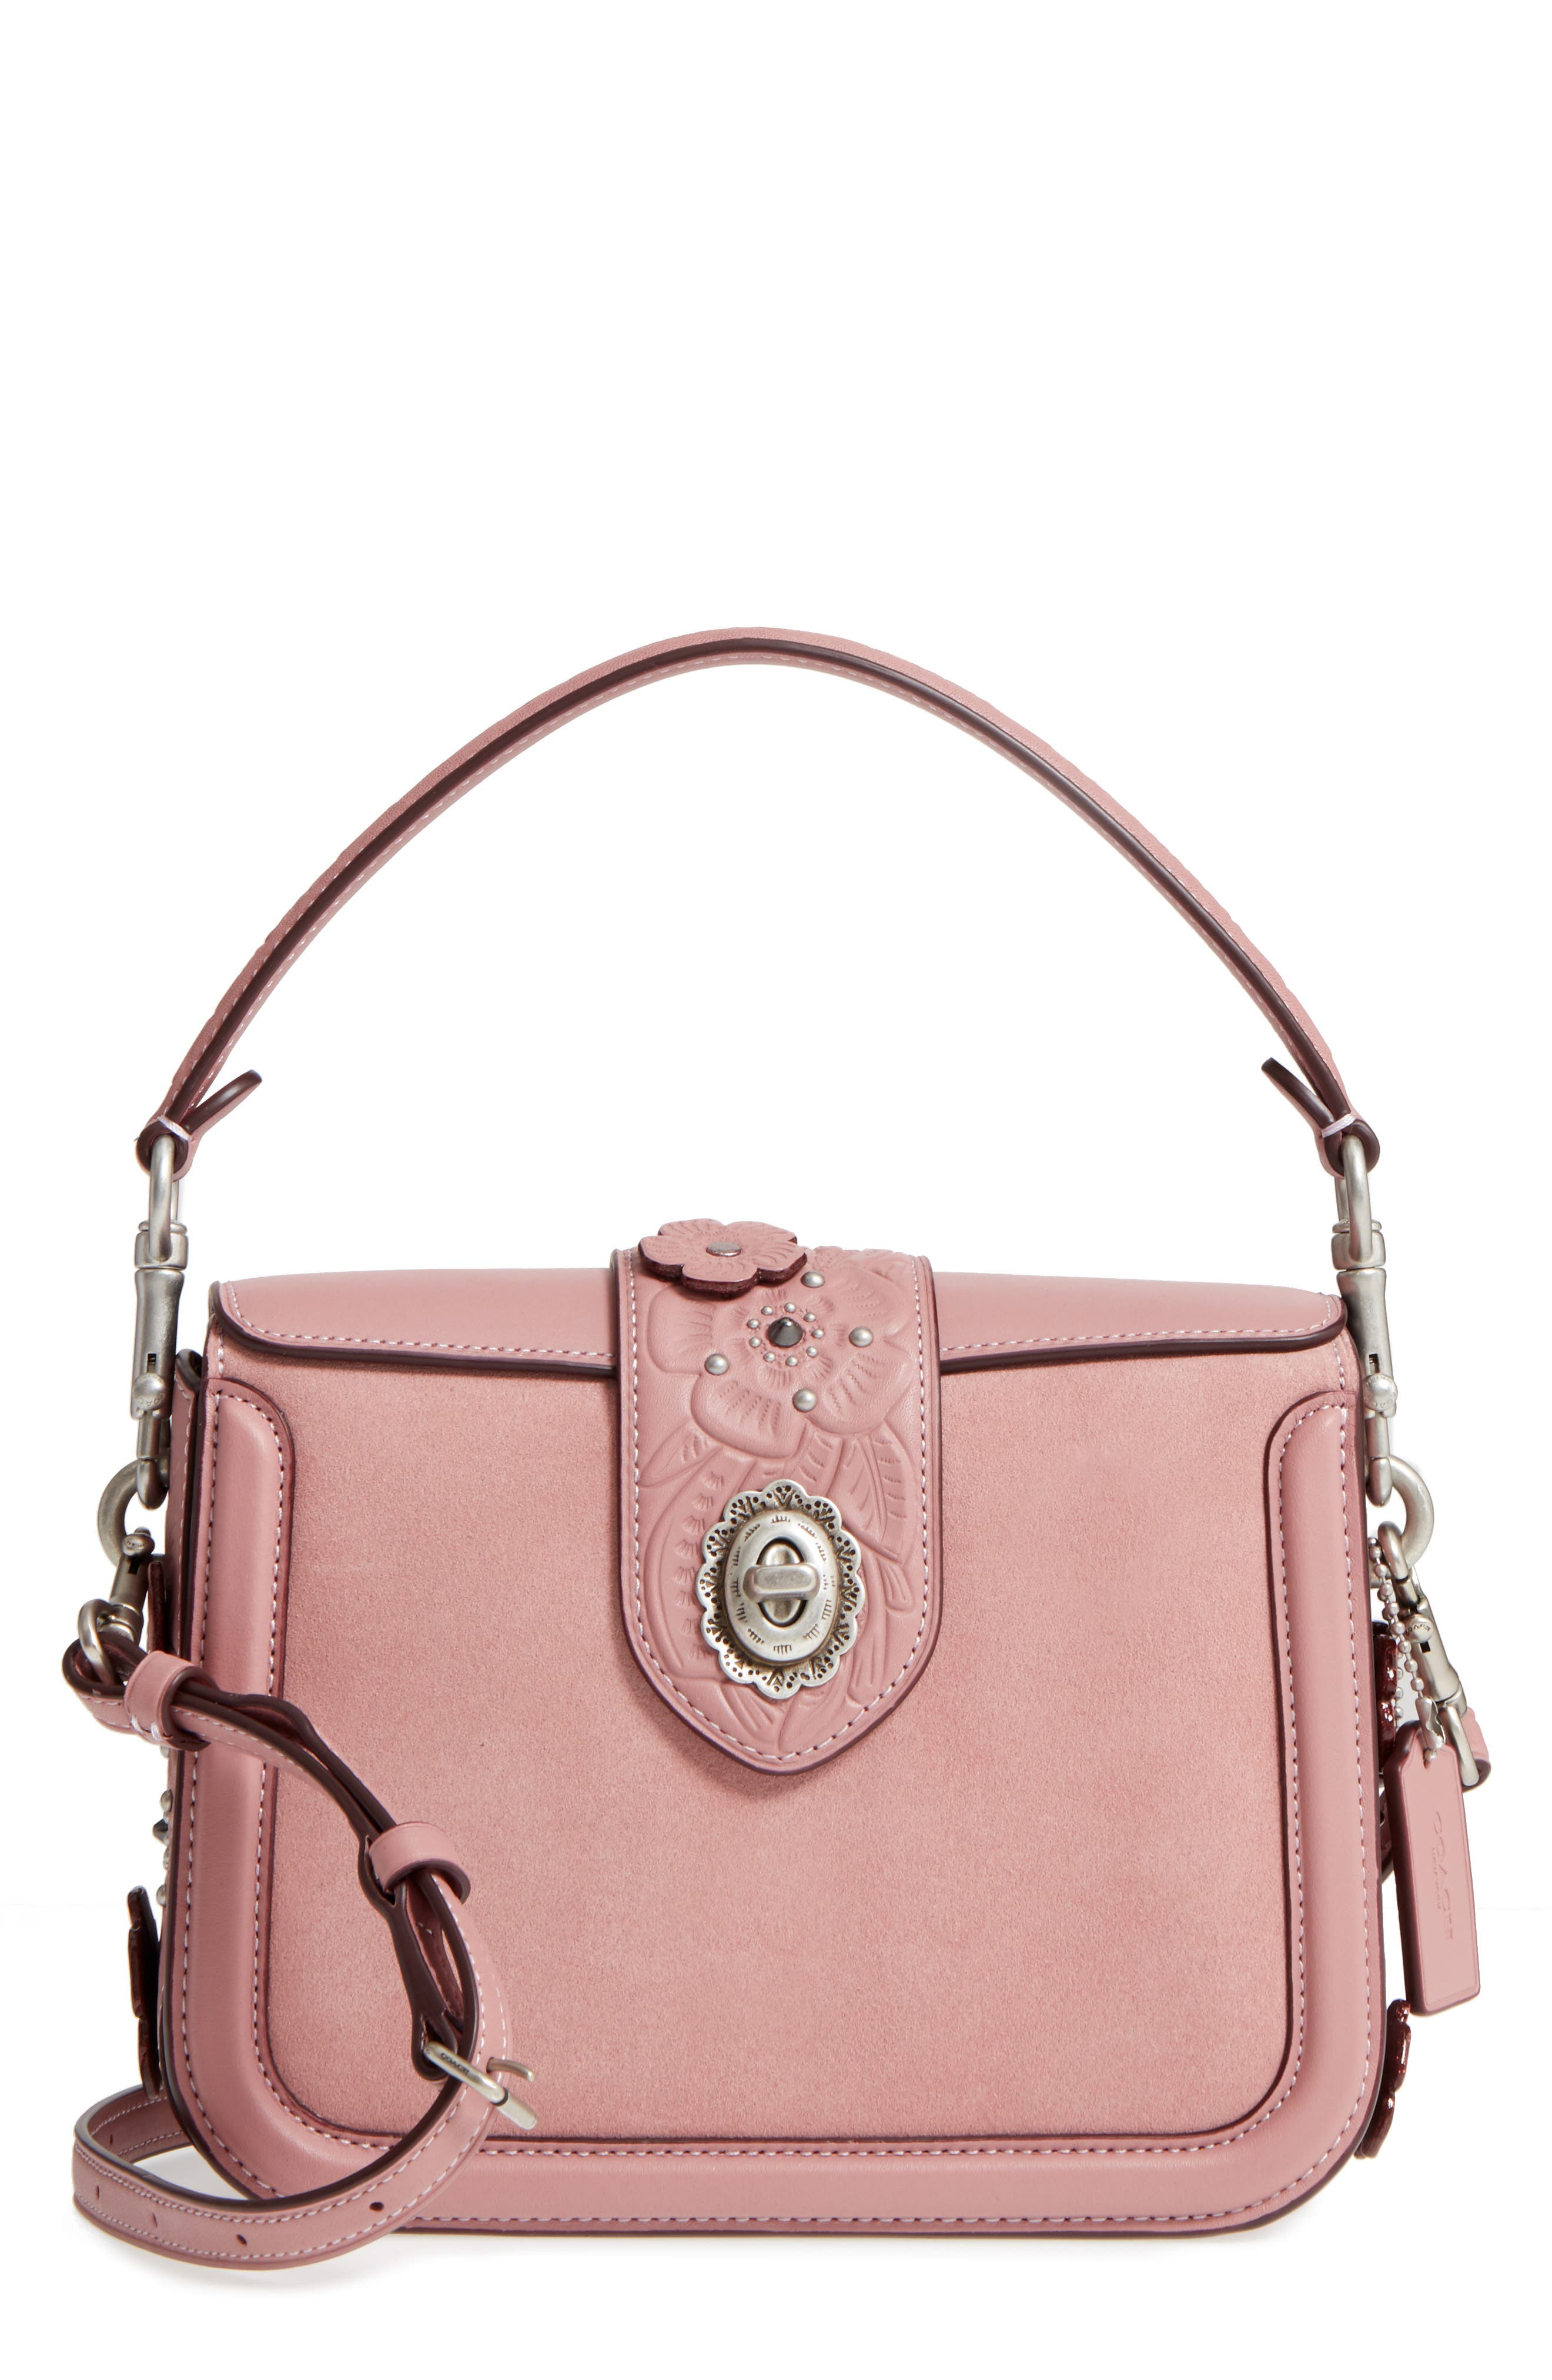 Page Tea Rose Calfskin Leather Top Handle Satchel,                             Main thumbnail 1, color,                             Dusty Rose